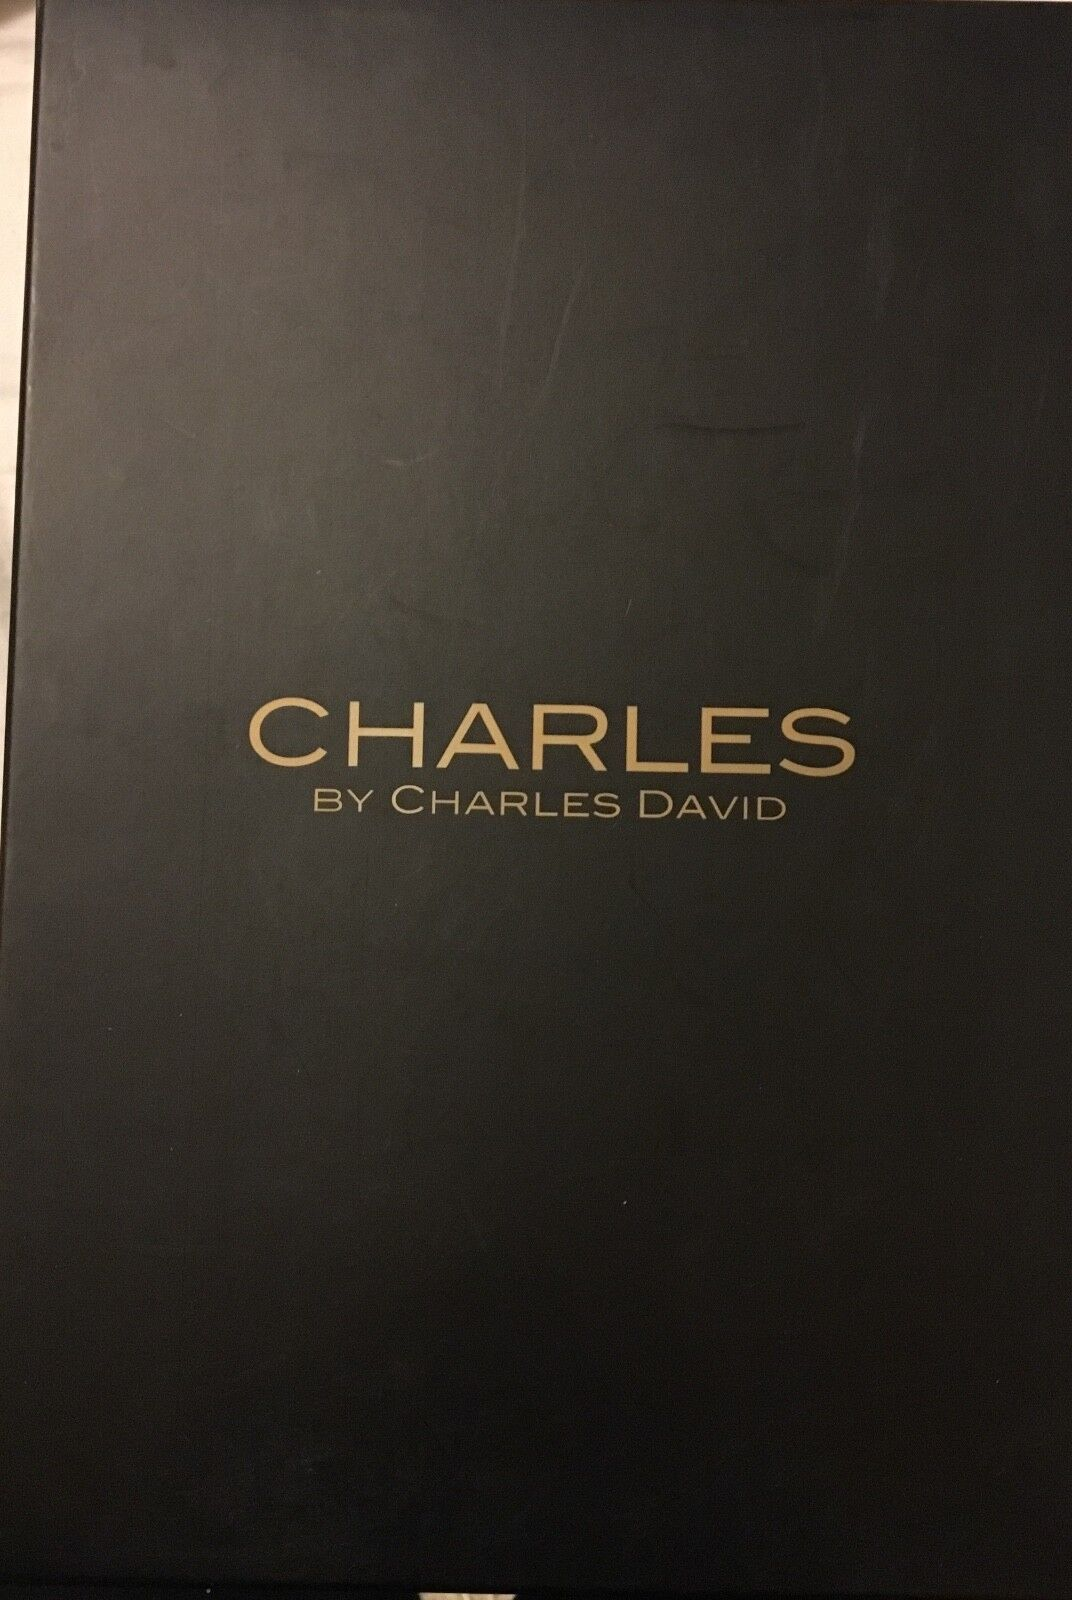 Charles David ankle wrap heels 6.5 black and camel BRAND BRAND BRAND NEW d2ed3a